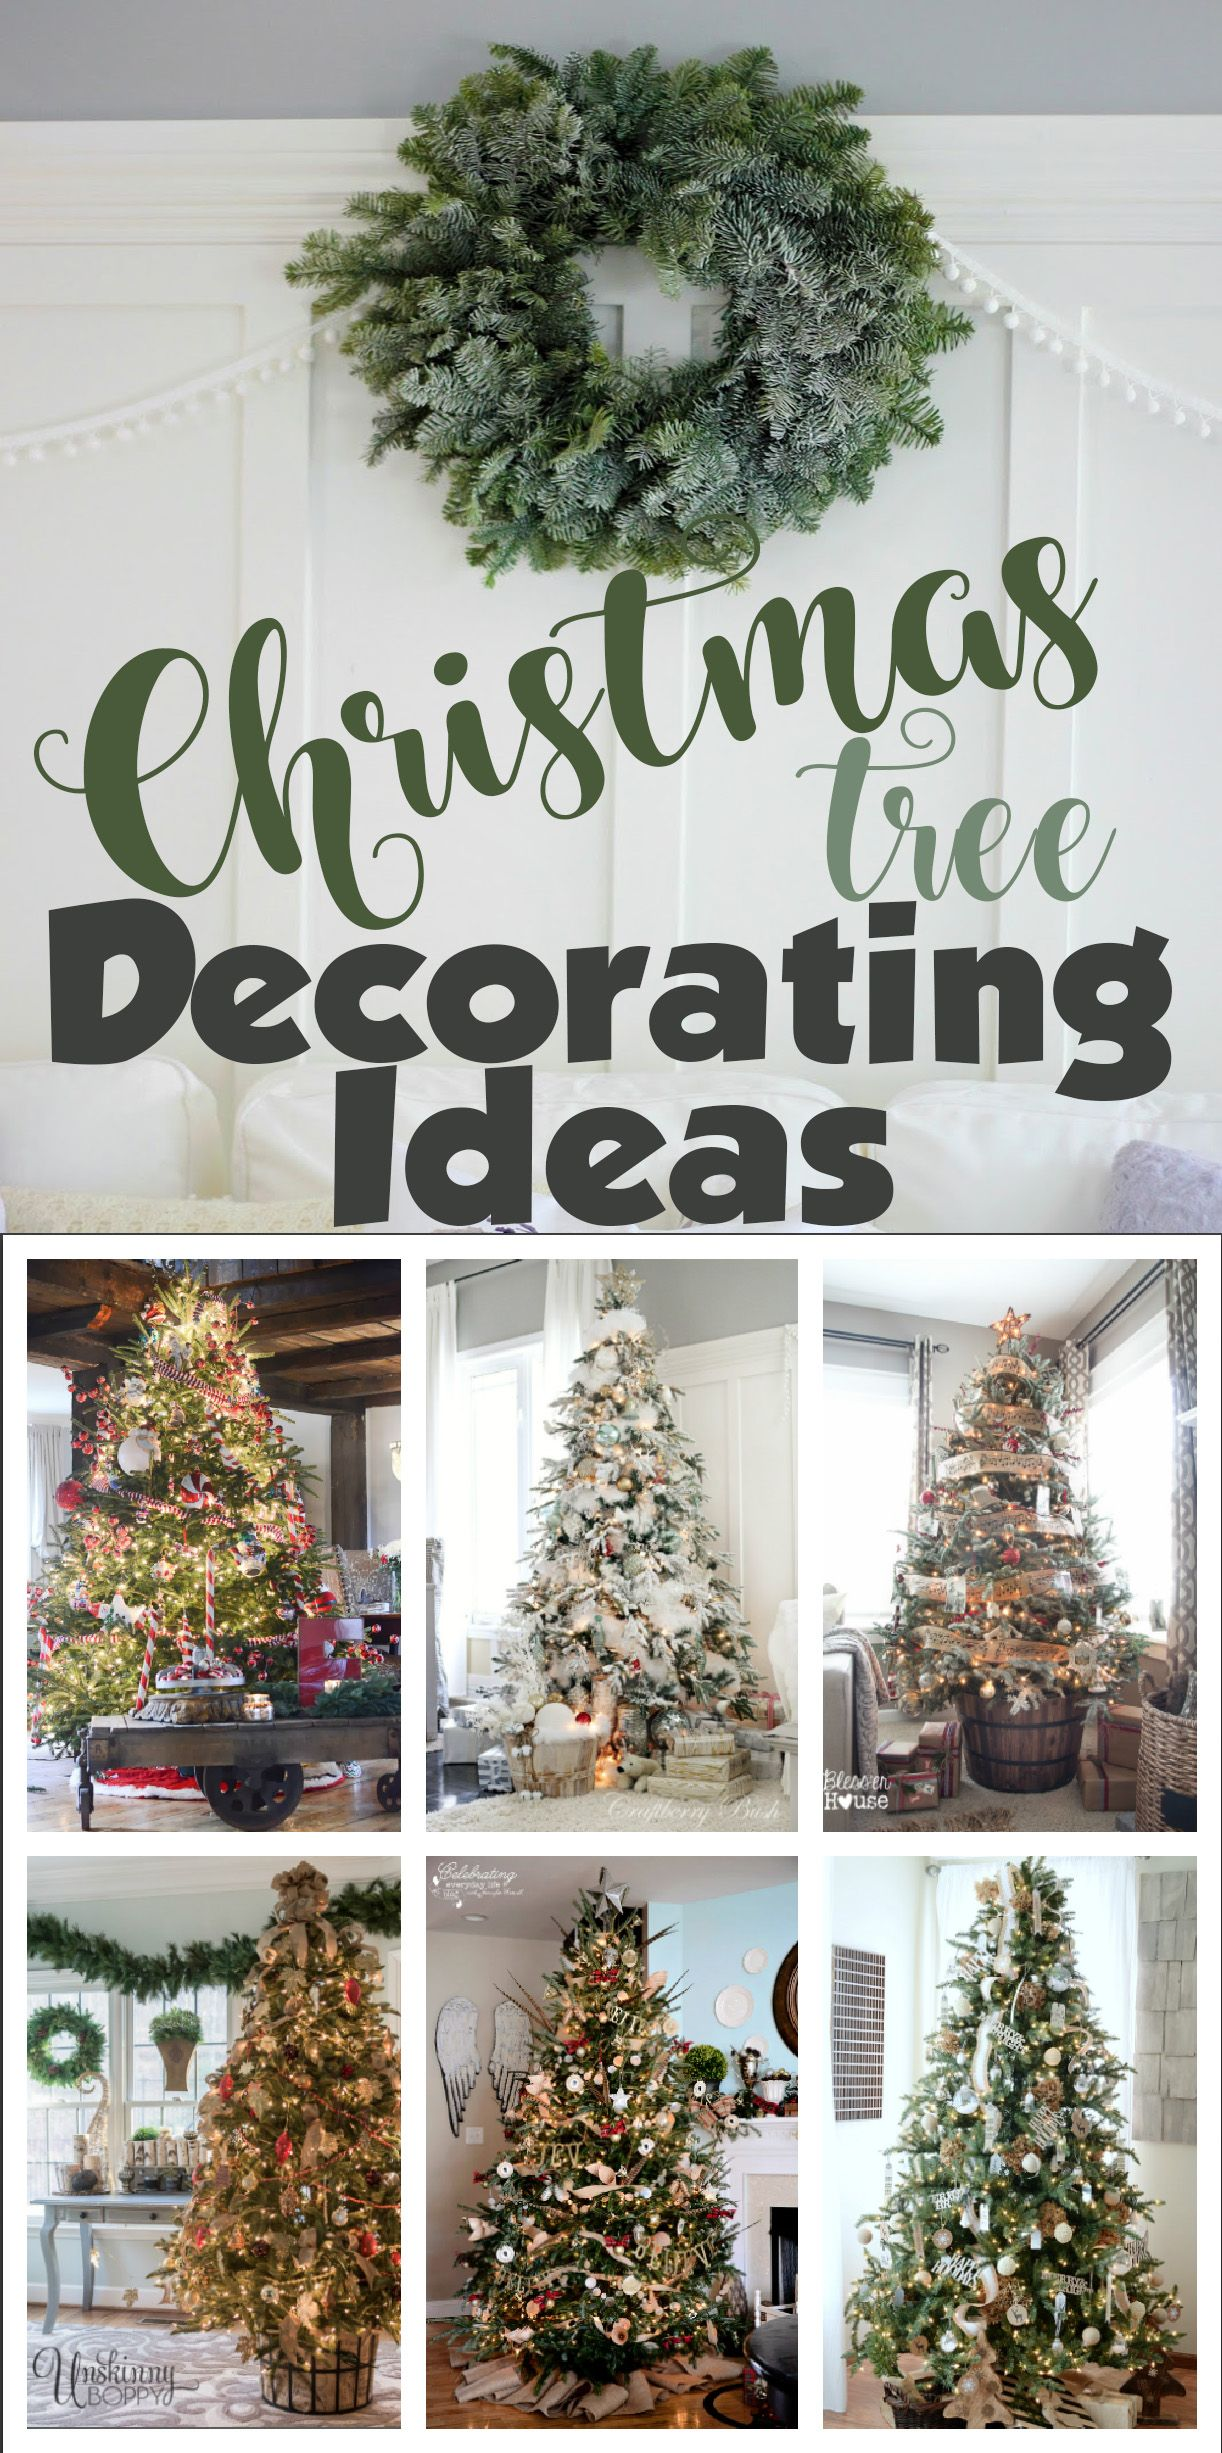 10 Stunning Christmas Trees - Unskinny Boppy | Hometalk: DIY ...